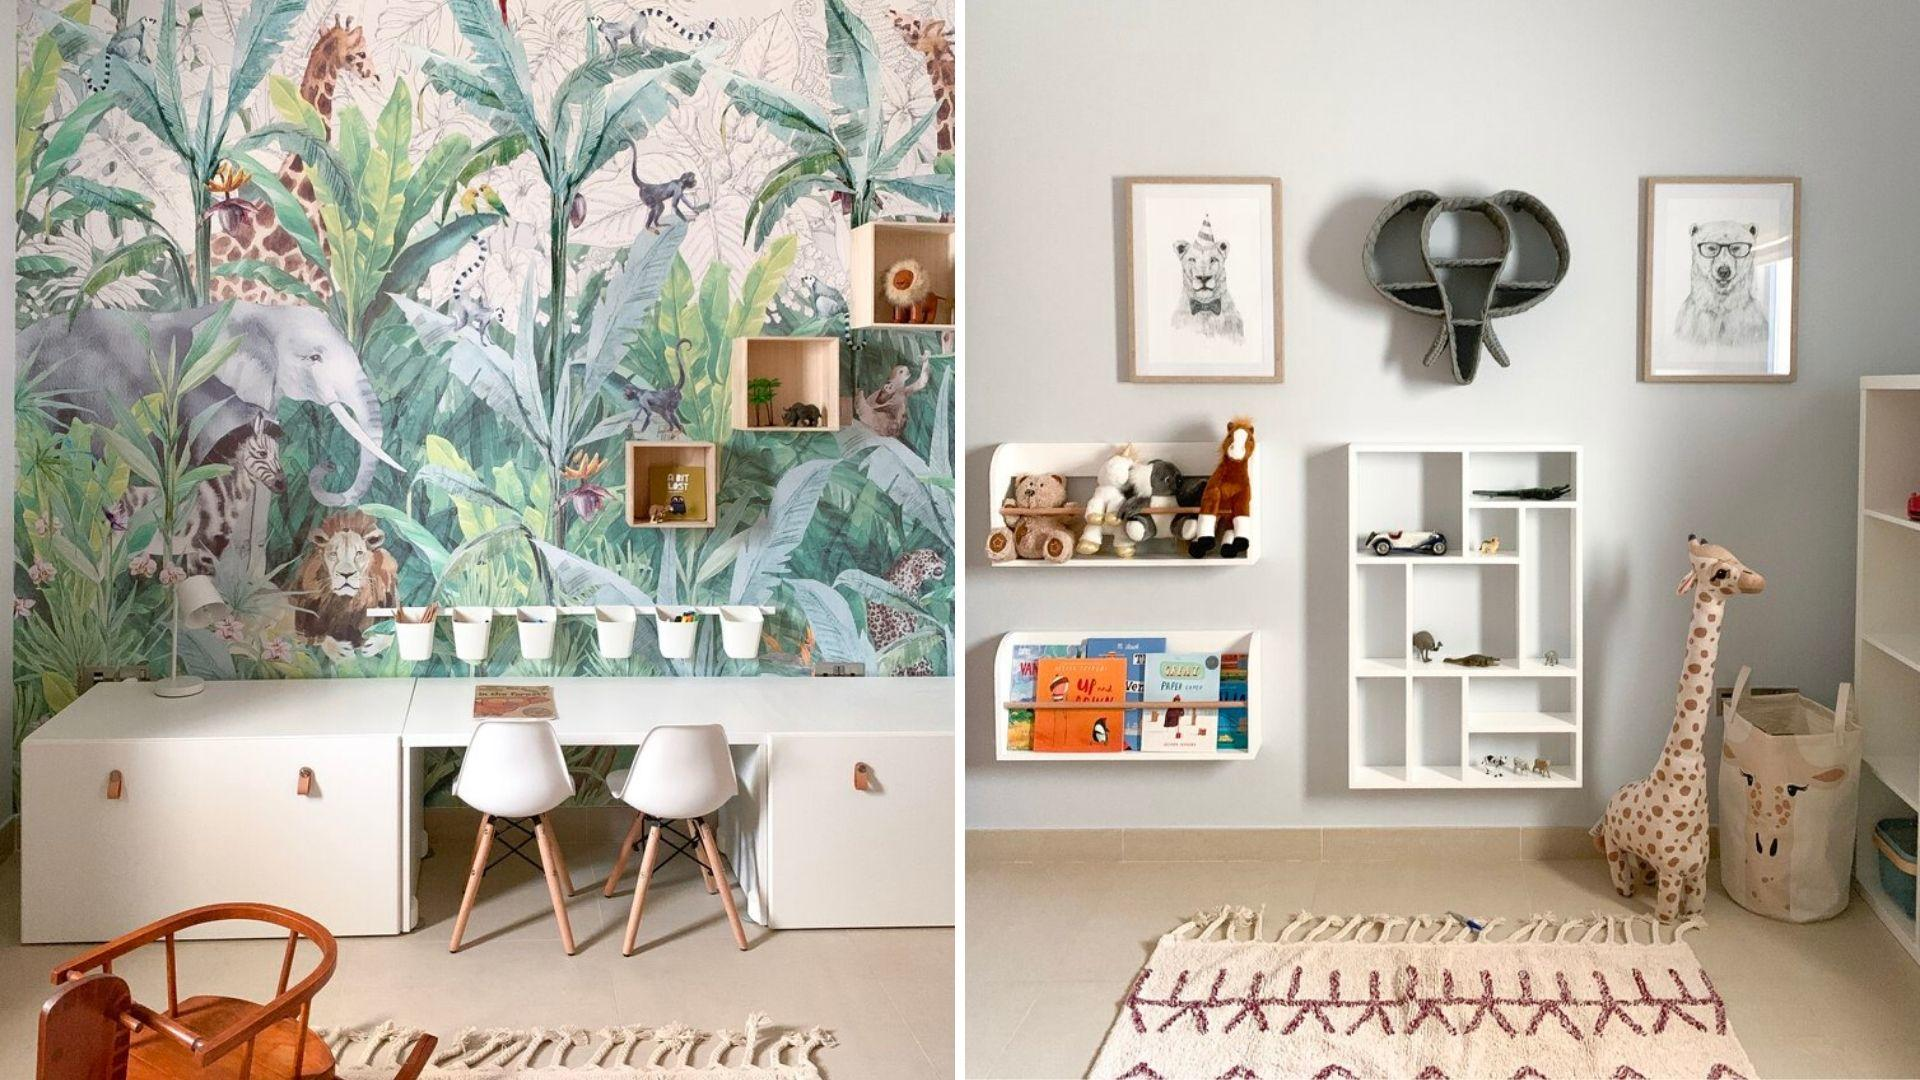 7 Expert Tips for Creating An Instagram-Worthy Children's Room